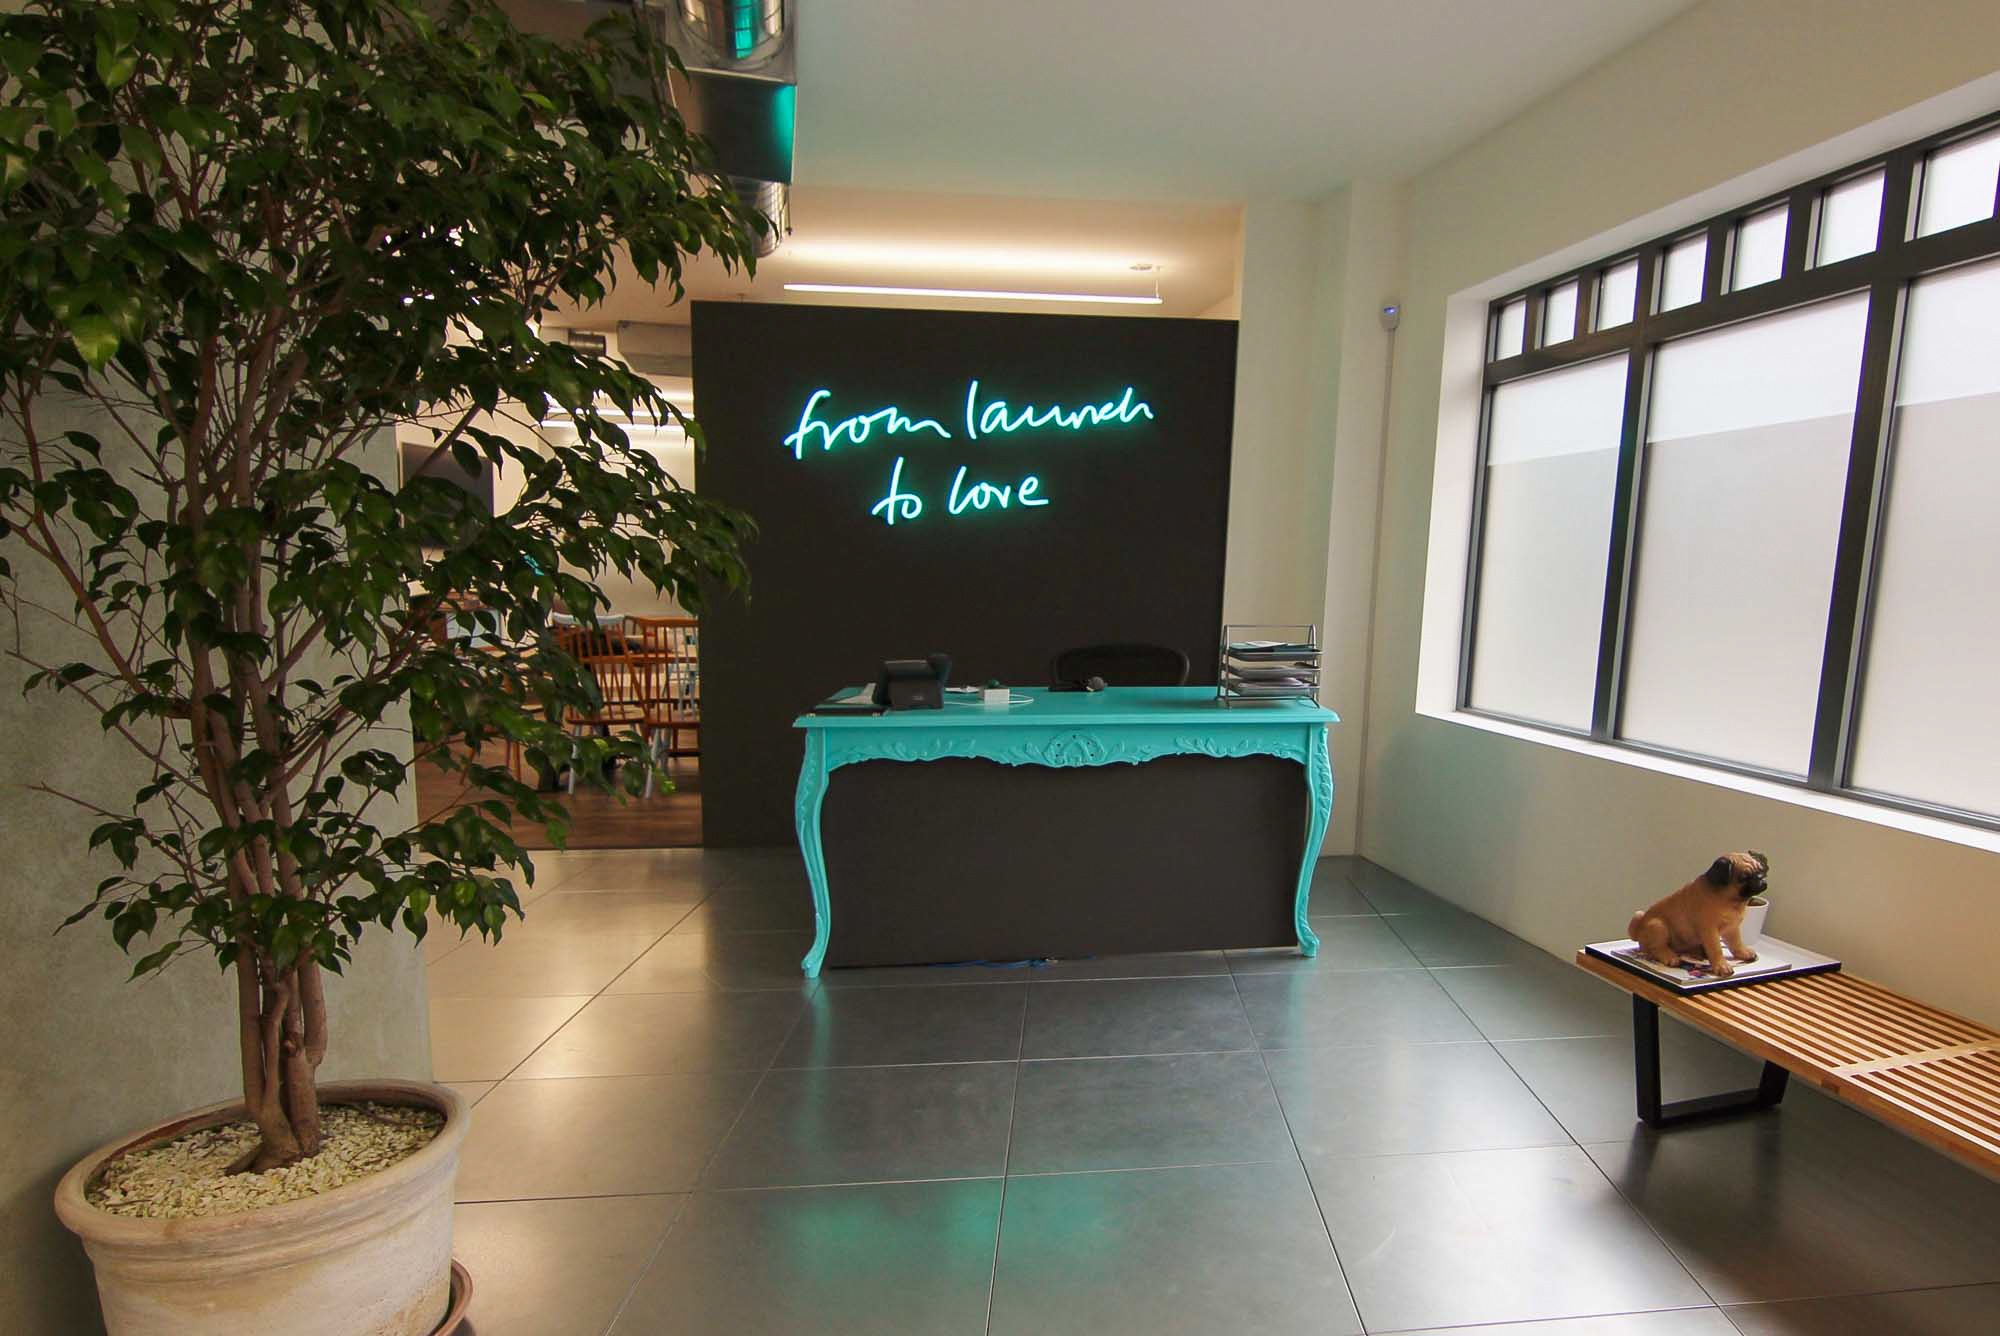 neon light behind a reception area